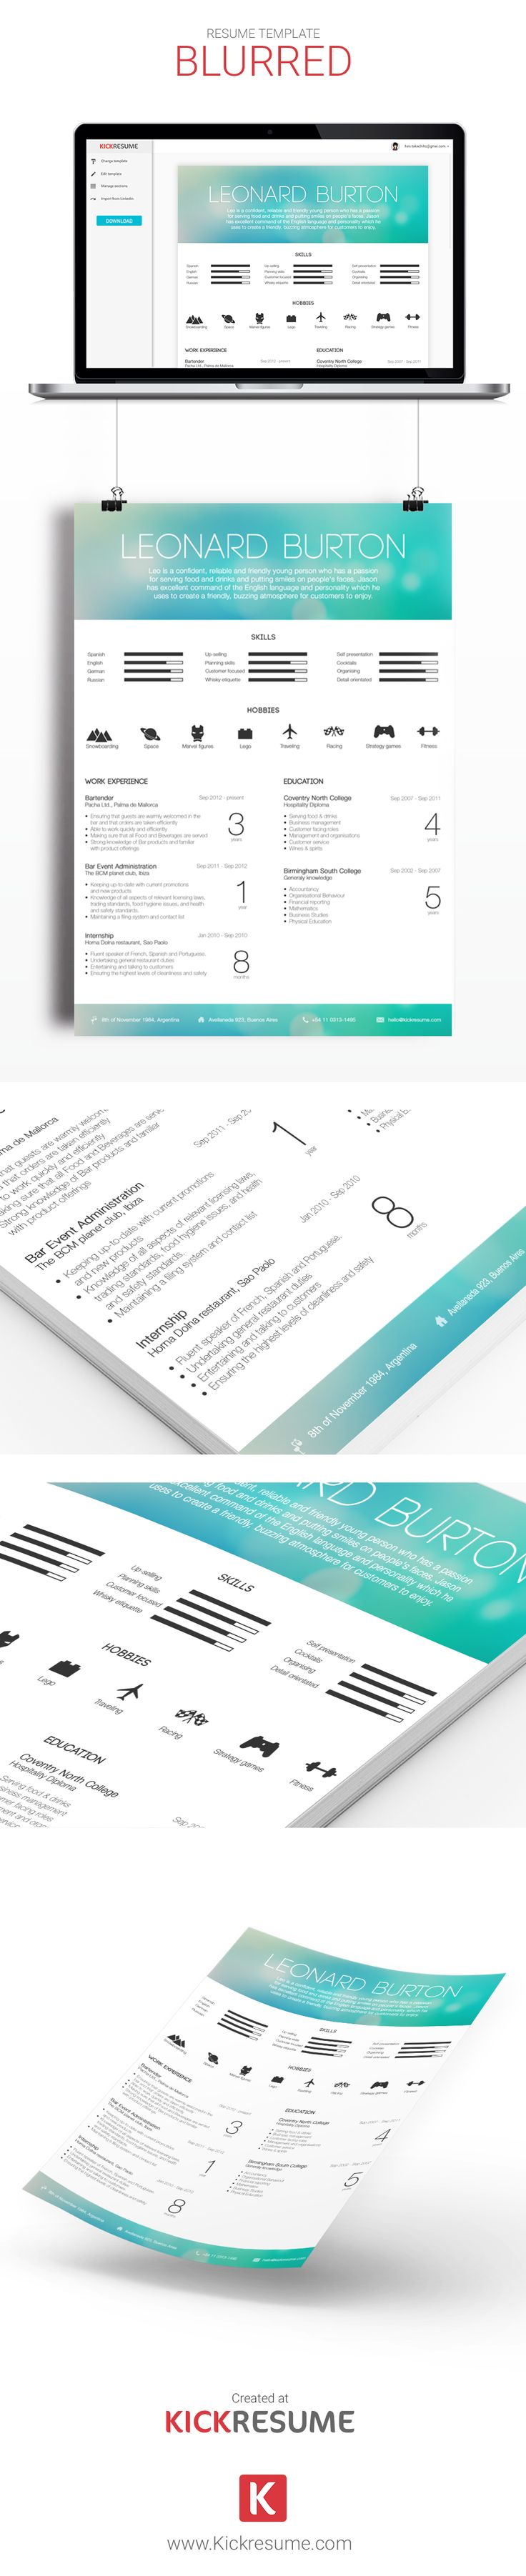 18 best Kickresume Templates Gallery (Resume samples, Resume ...